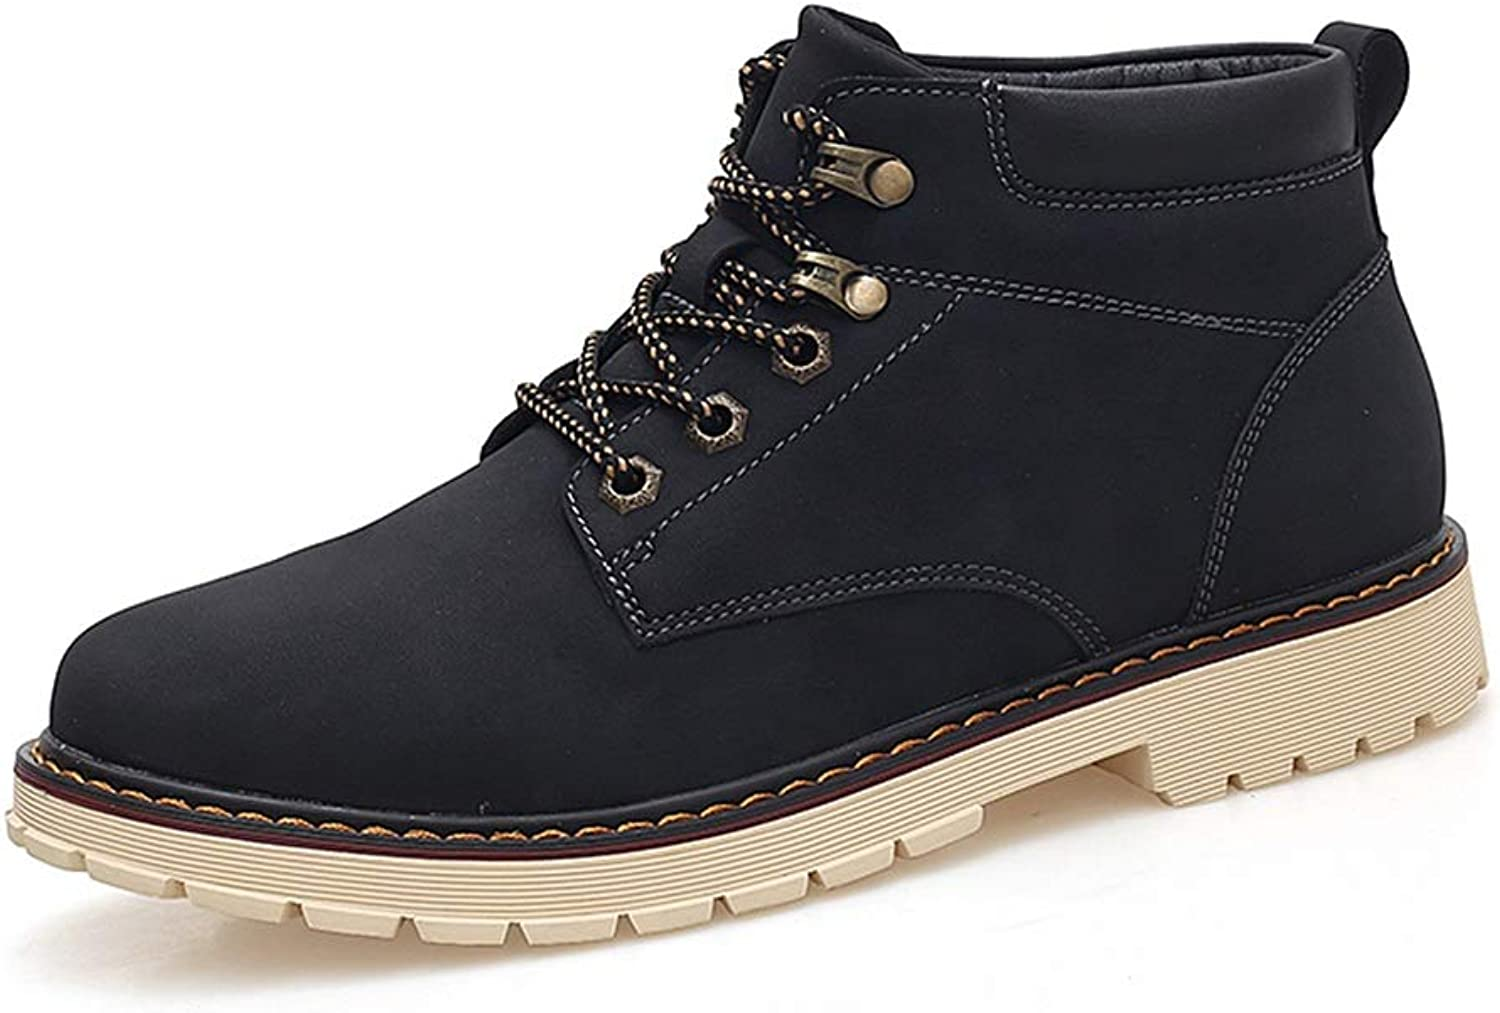 BND-SHOES,Men's Ankle Boots Casual Fashion High Top Round Toe Tie with Rubber Outsole Lace up Work shoes Durable,Stand Wear and Tear (color   Black, Size   9 D(M) US)